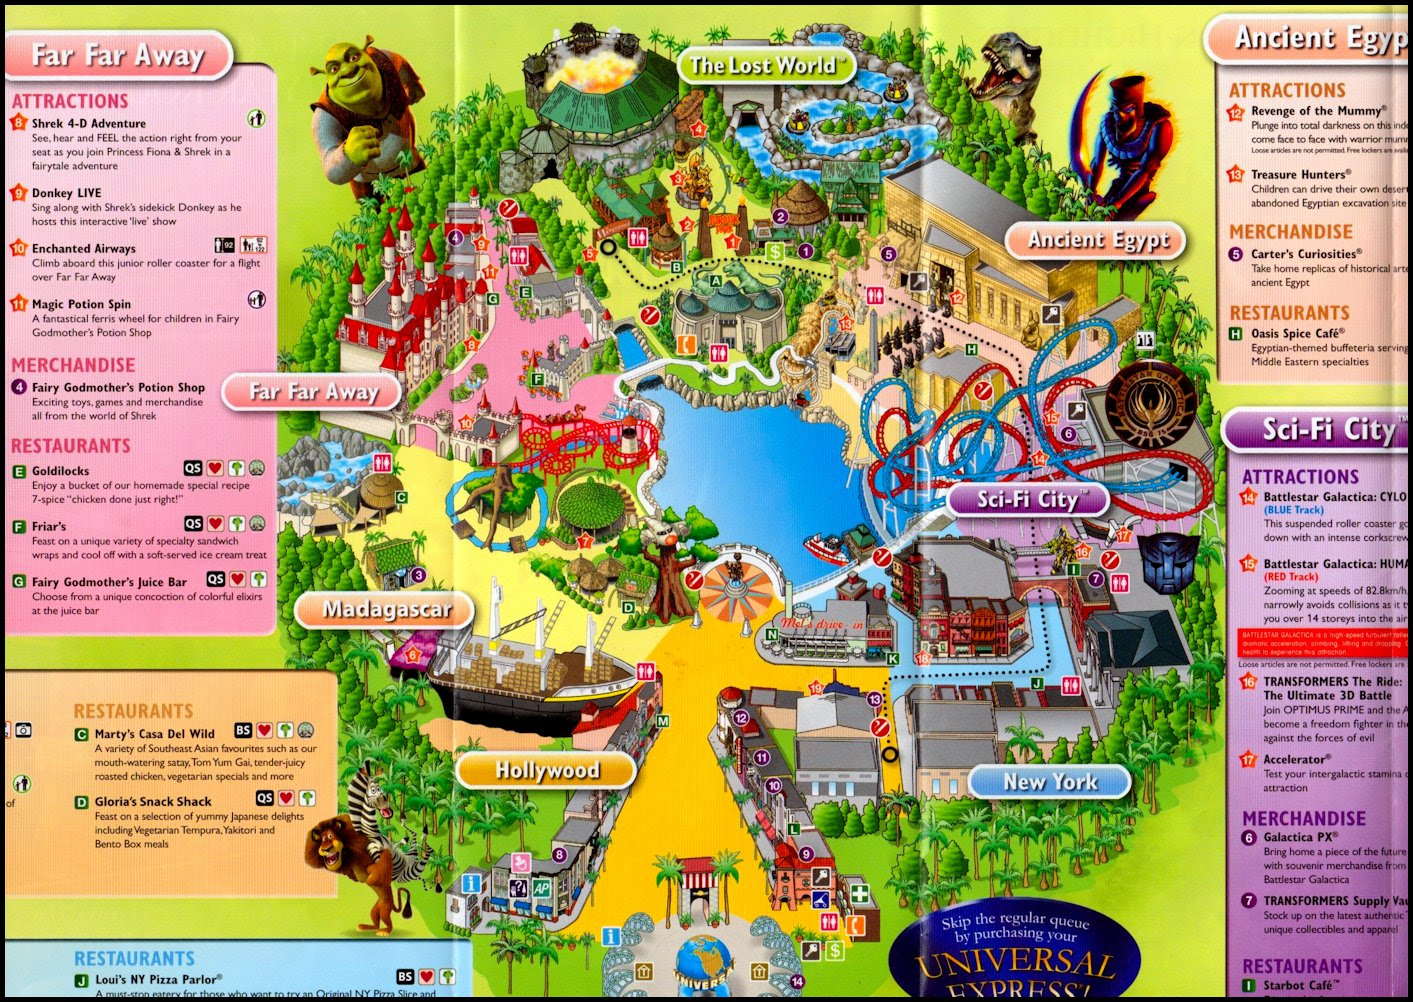 The Splendid and Thematic Universal Studios Singapore; It Is More than Just a Park!